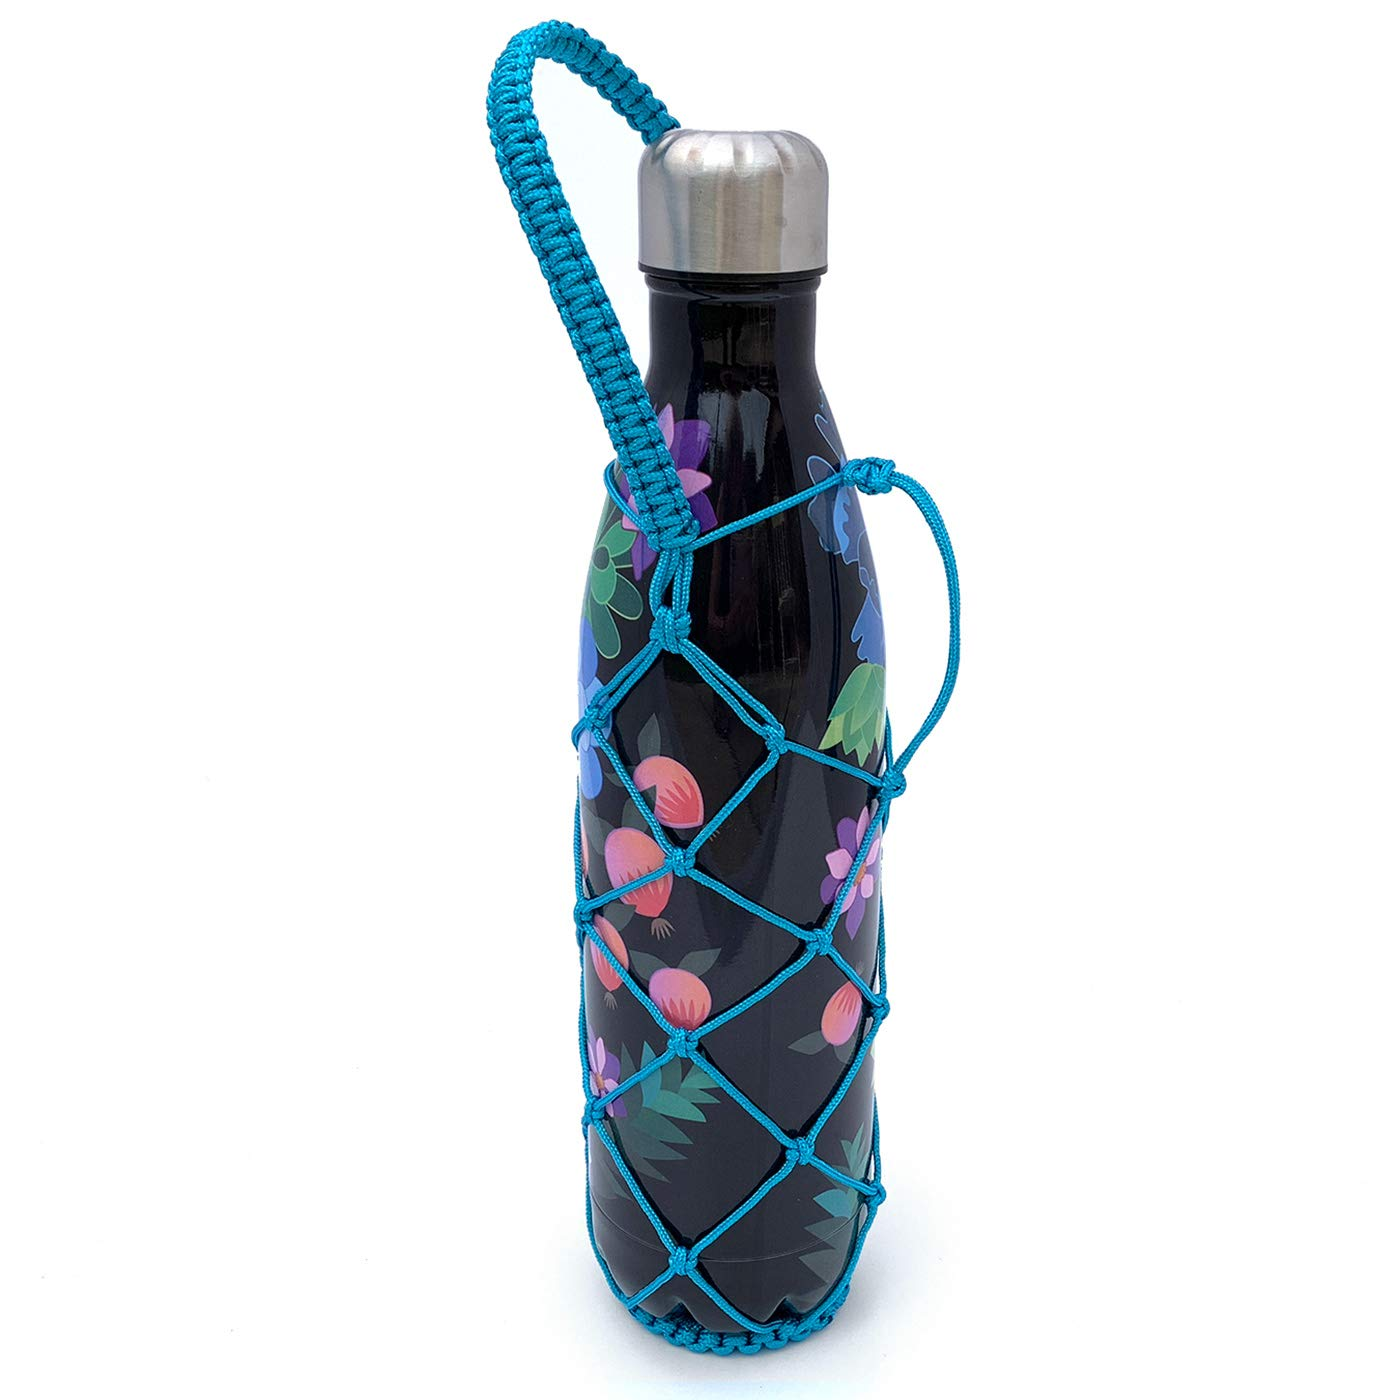 Gearproz Water Bottle Holder for Mira - Also Holds S'well, Simple Modern, Manna Bottles 9, 17, 25 oz - Stylish, Durable, Handcrafted Net - Frees Up Hands, Prevents Dropping and Dents (Turquoise 25oz)